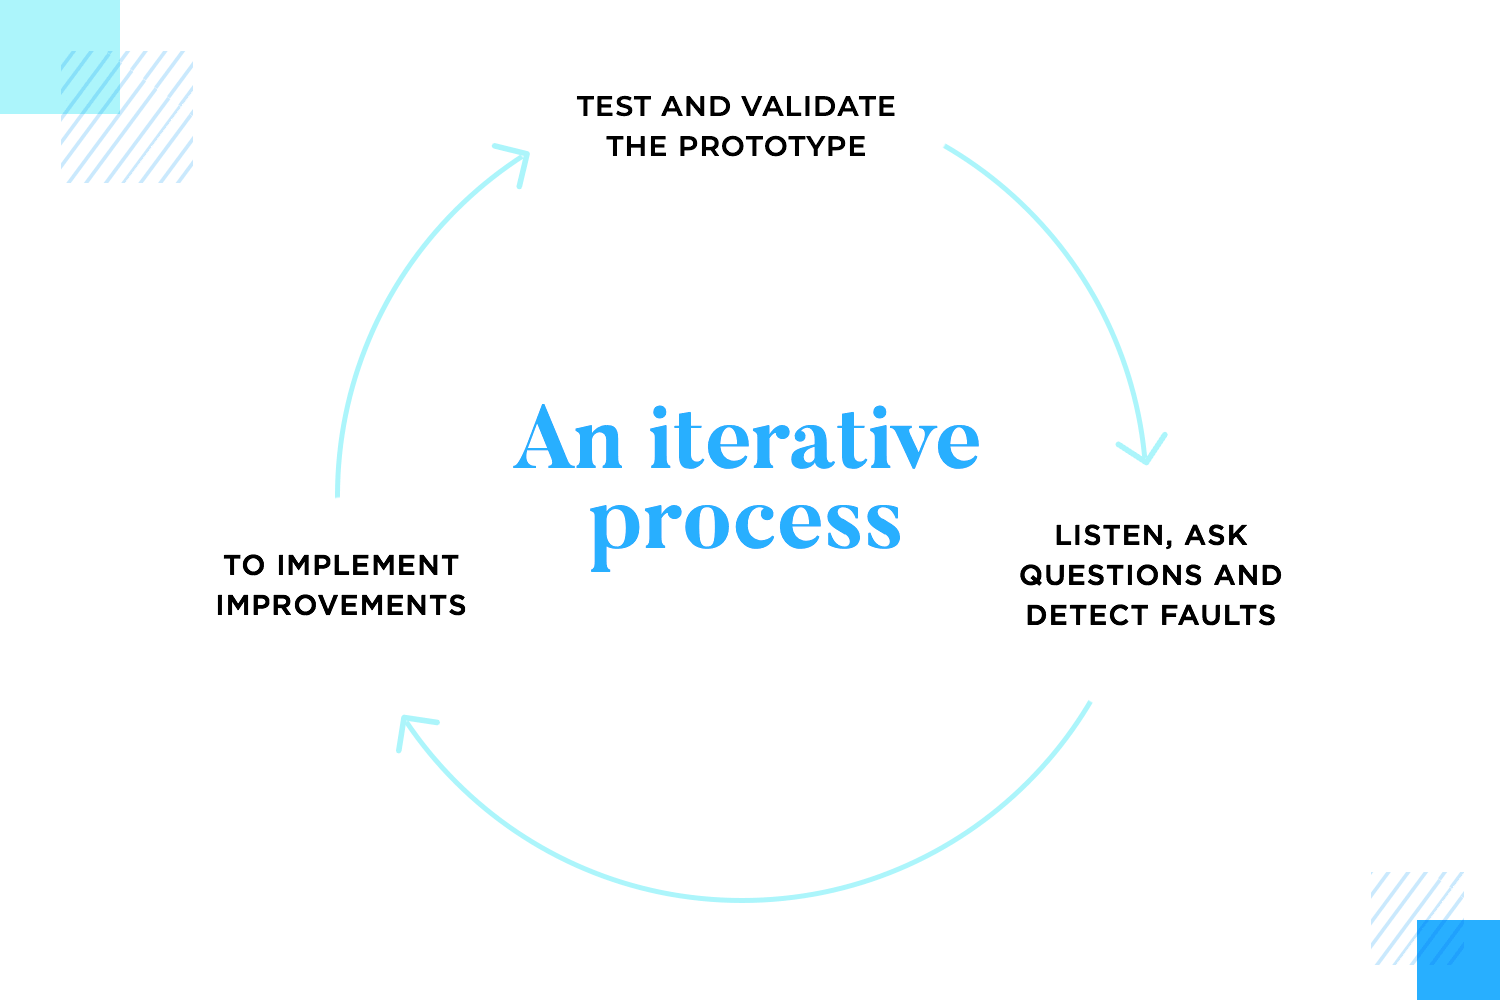 Prototyping should be an iterative design process